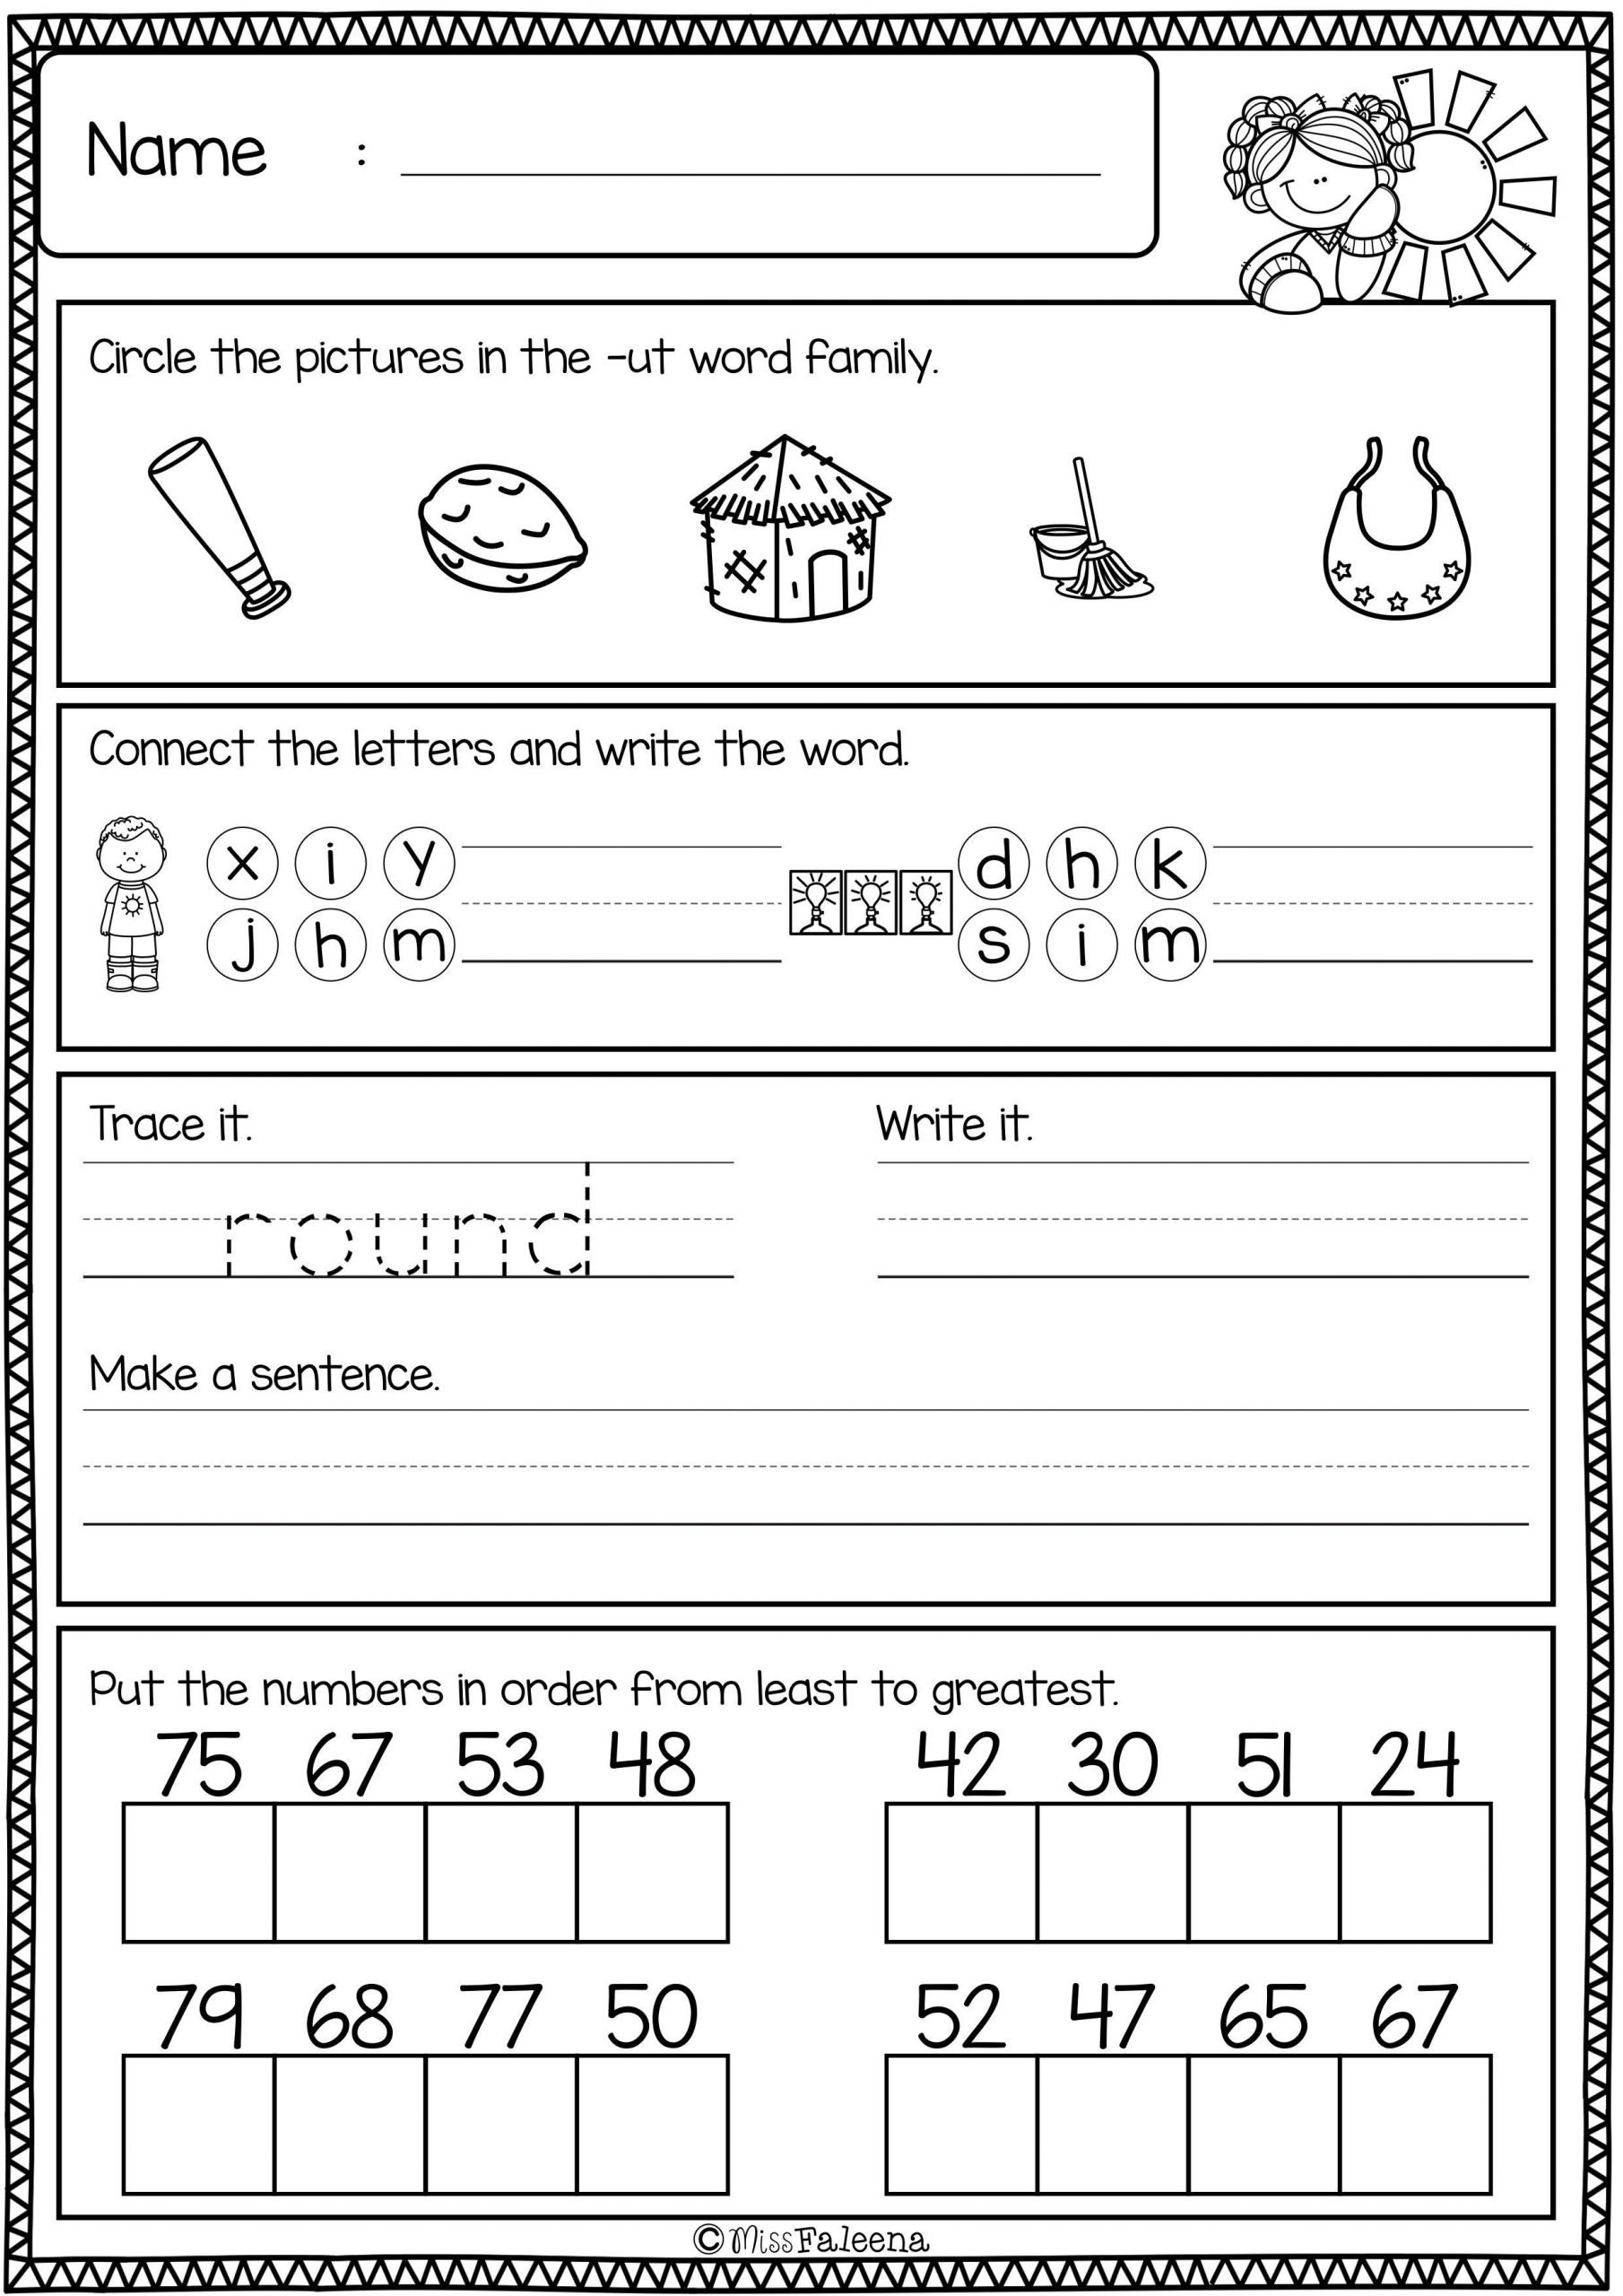 Morning Work Worksheets First Grade Morning Work Set 2 Includes 60 Pages Of Morning